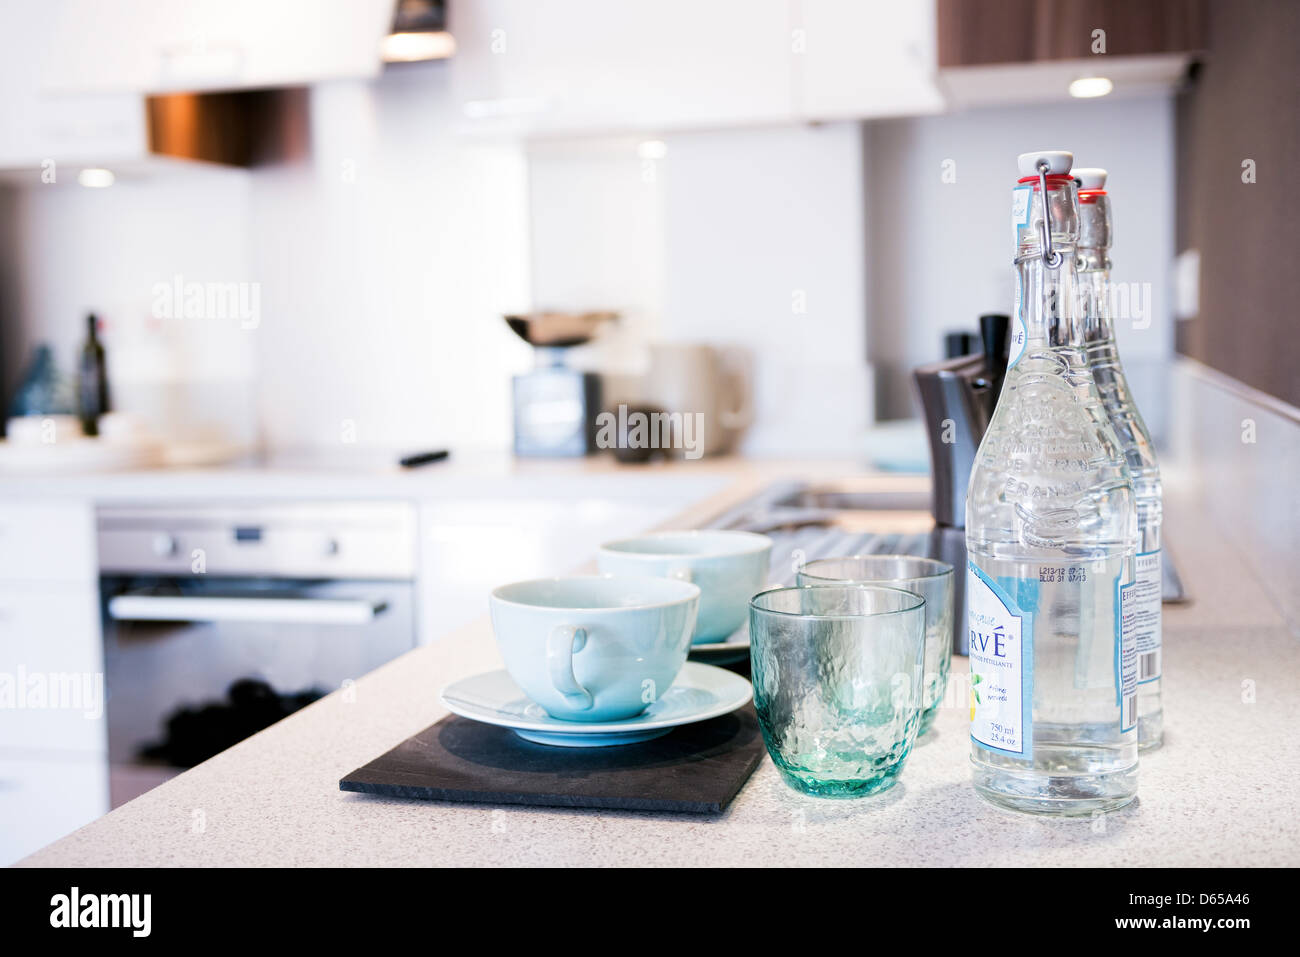 Carefully laid out cups, saucers, glasses and water bottles in a contemporary kitchen - Stock Image